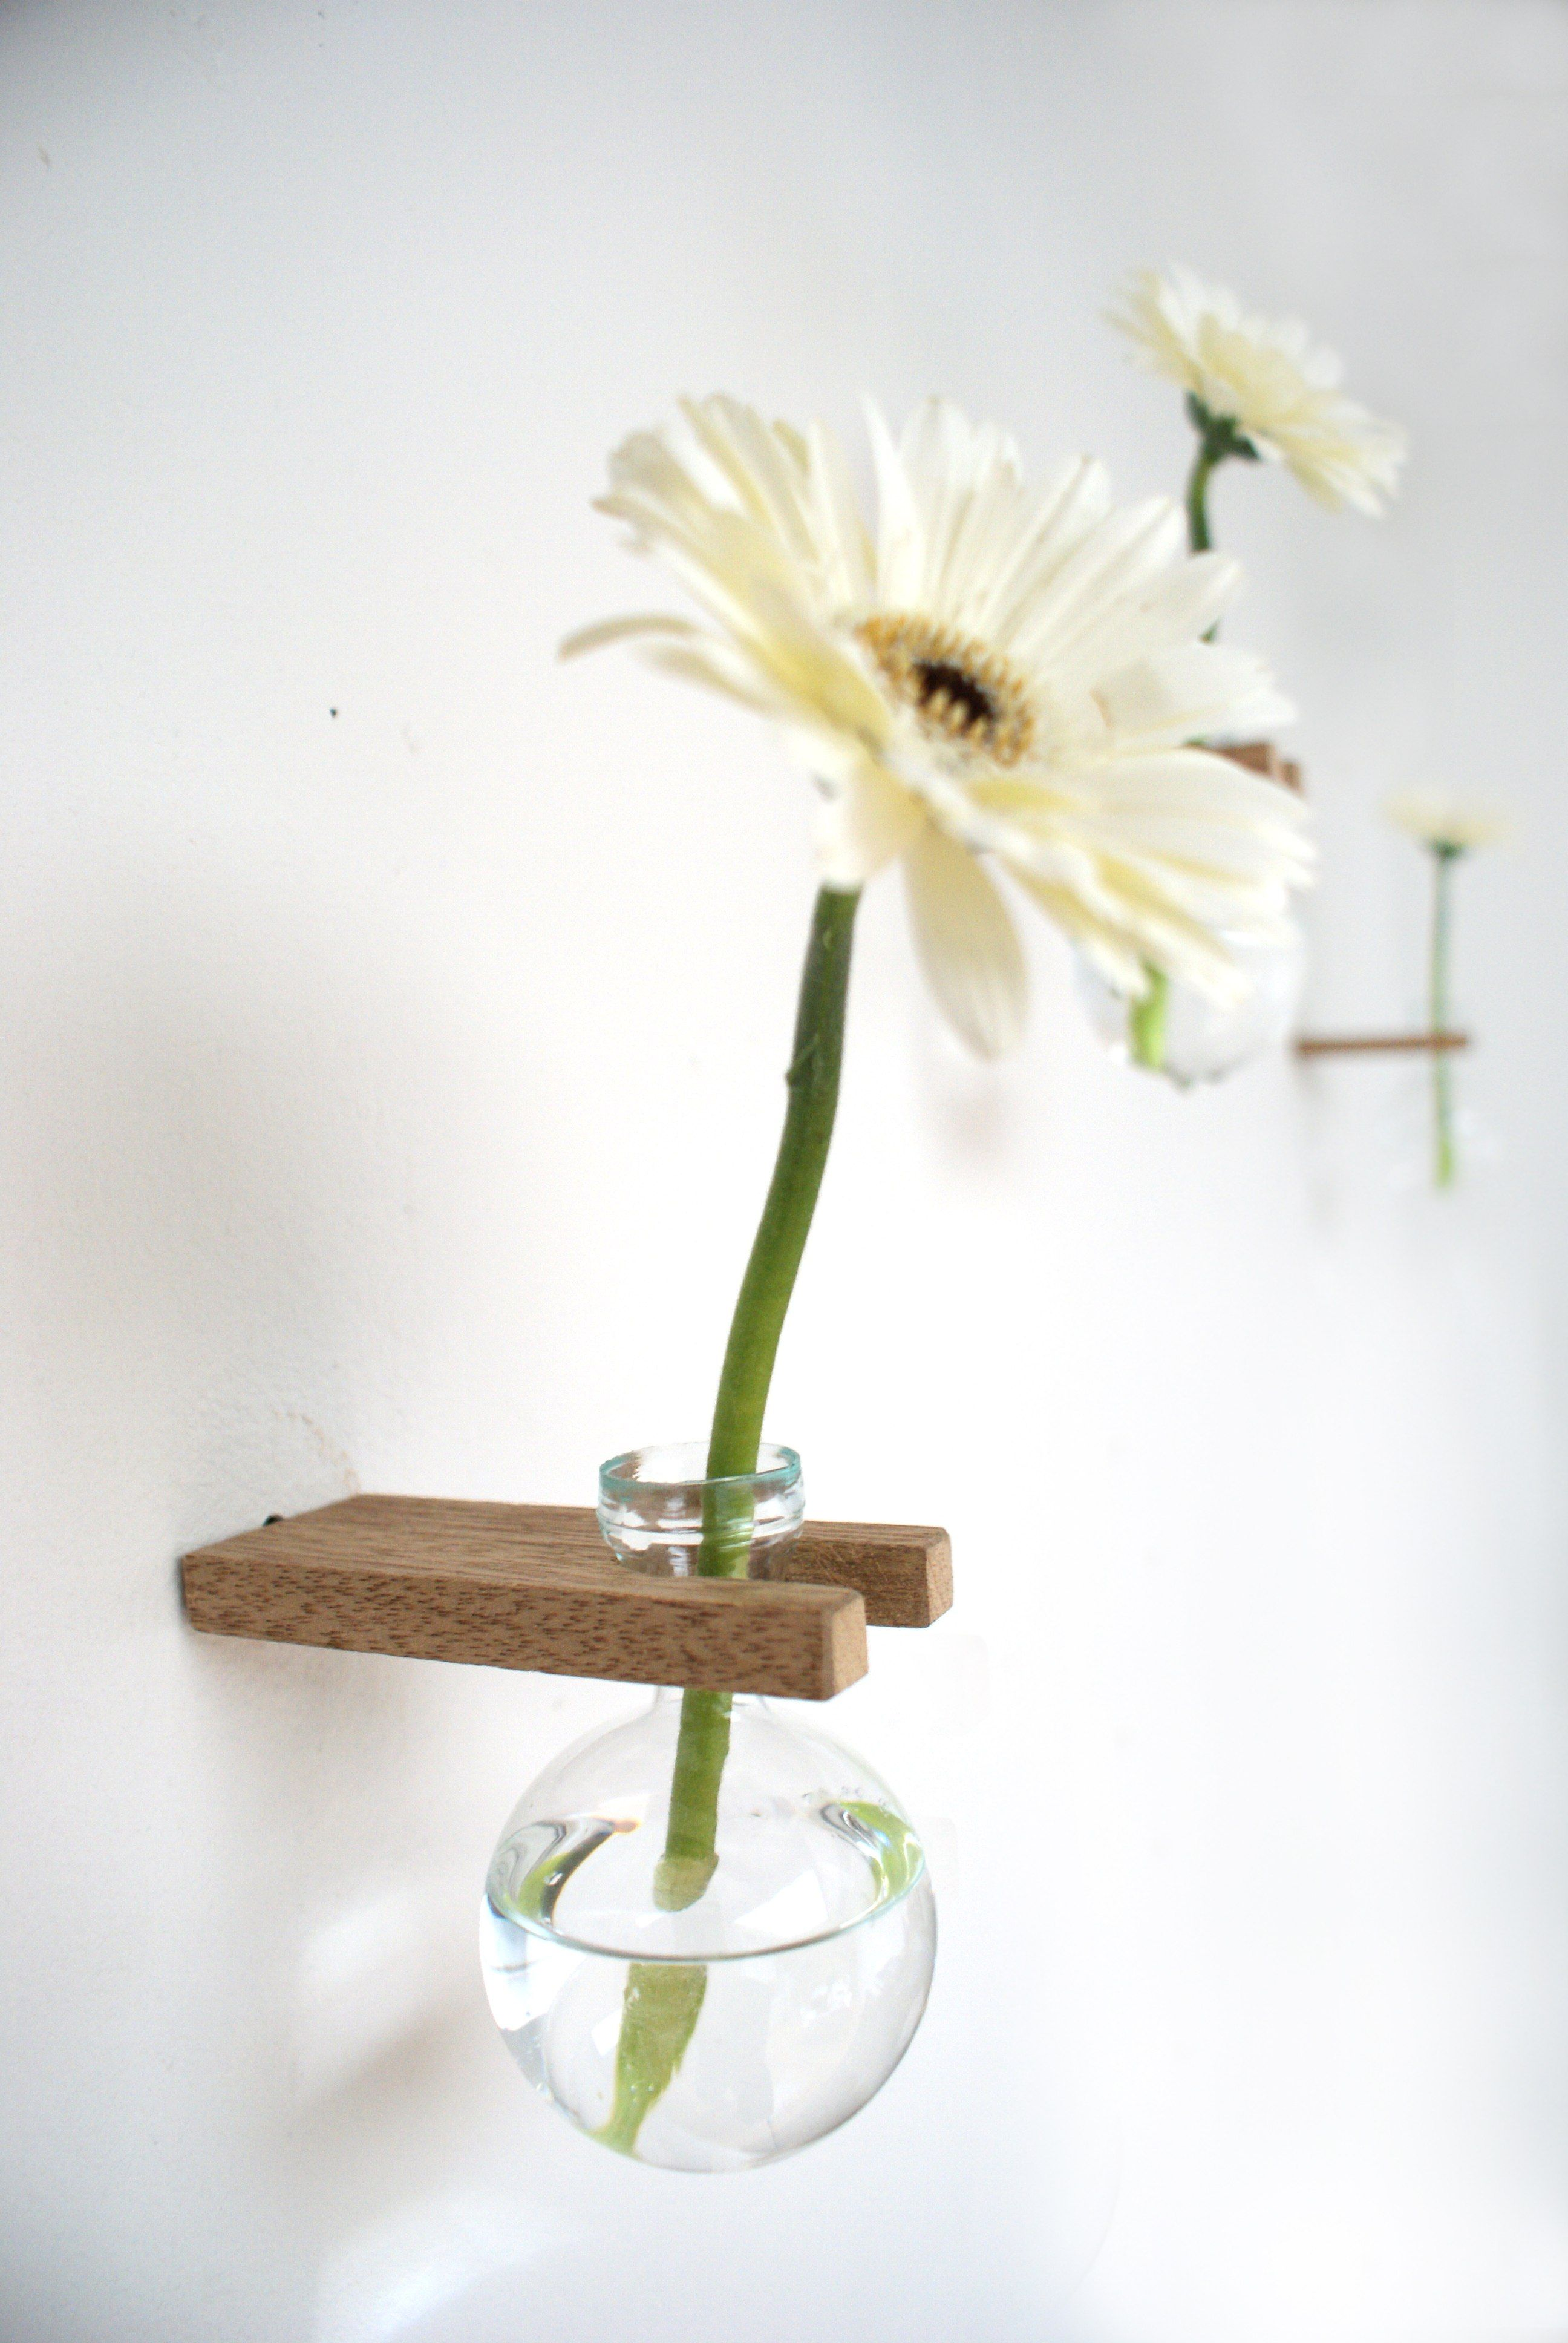 Shop Wooden Glass Wall Vase On Crowdyhouse Glass Wall Vase Wall Vase Wooden Vase